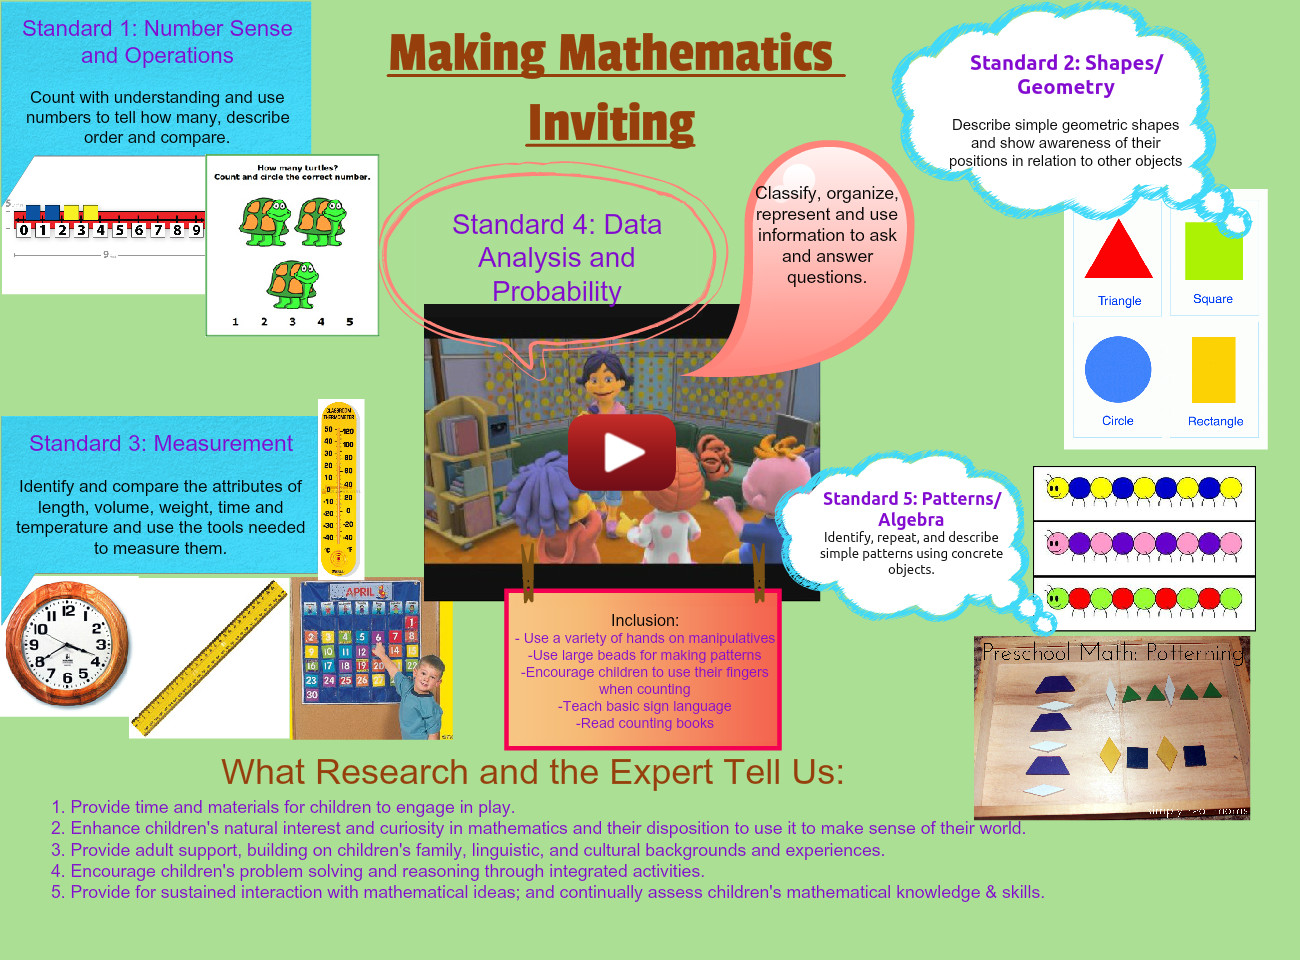 Making Mathematics Inviting